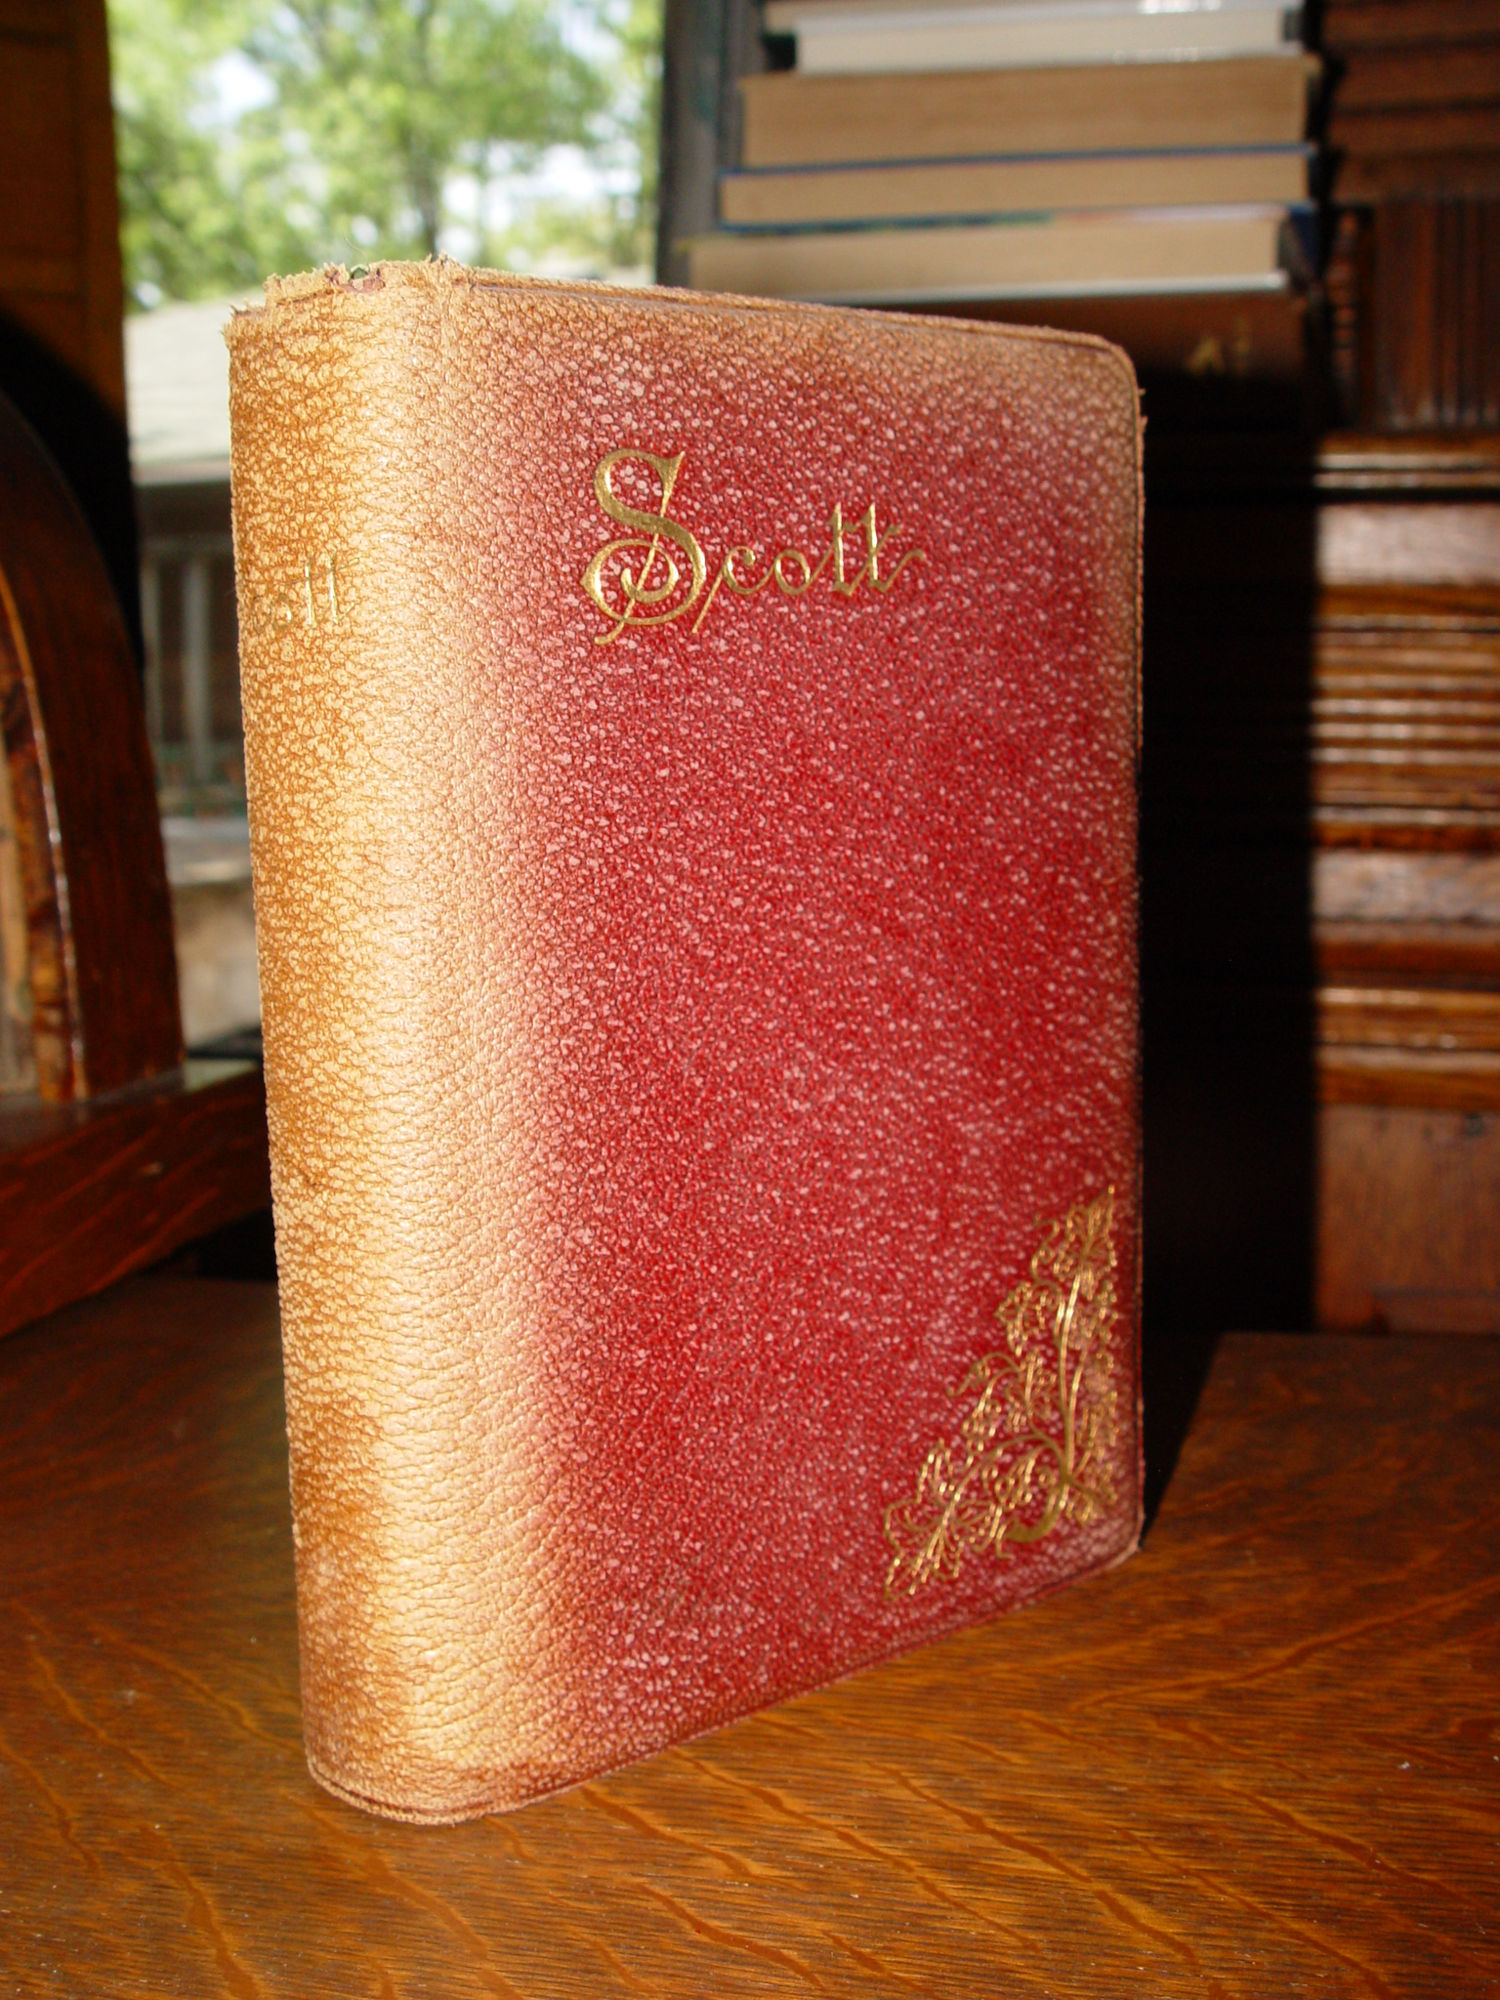 THE POETICAL WORKS OF SIR                                         WALTER SCOTT Walter Scott, intro                                         by Charles Eliot Norton                                         Published by Thomas Y. Crowell                                         and Co., New York 1894